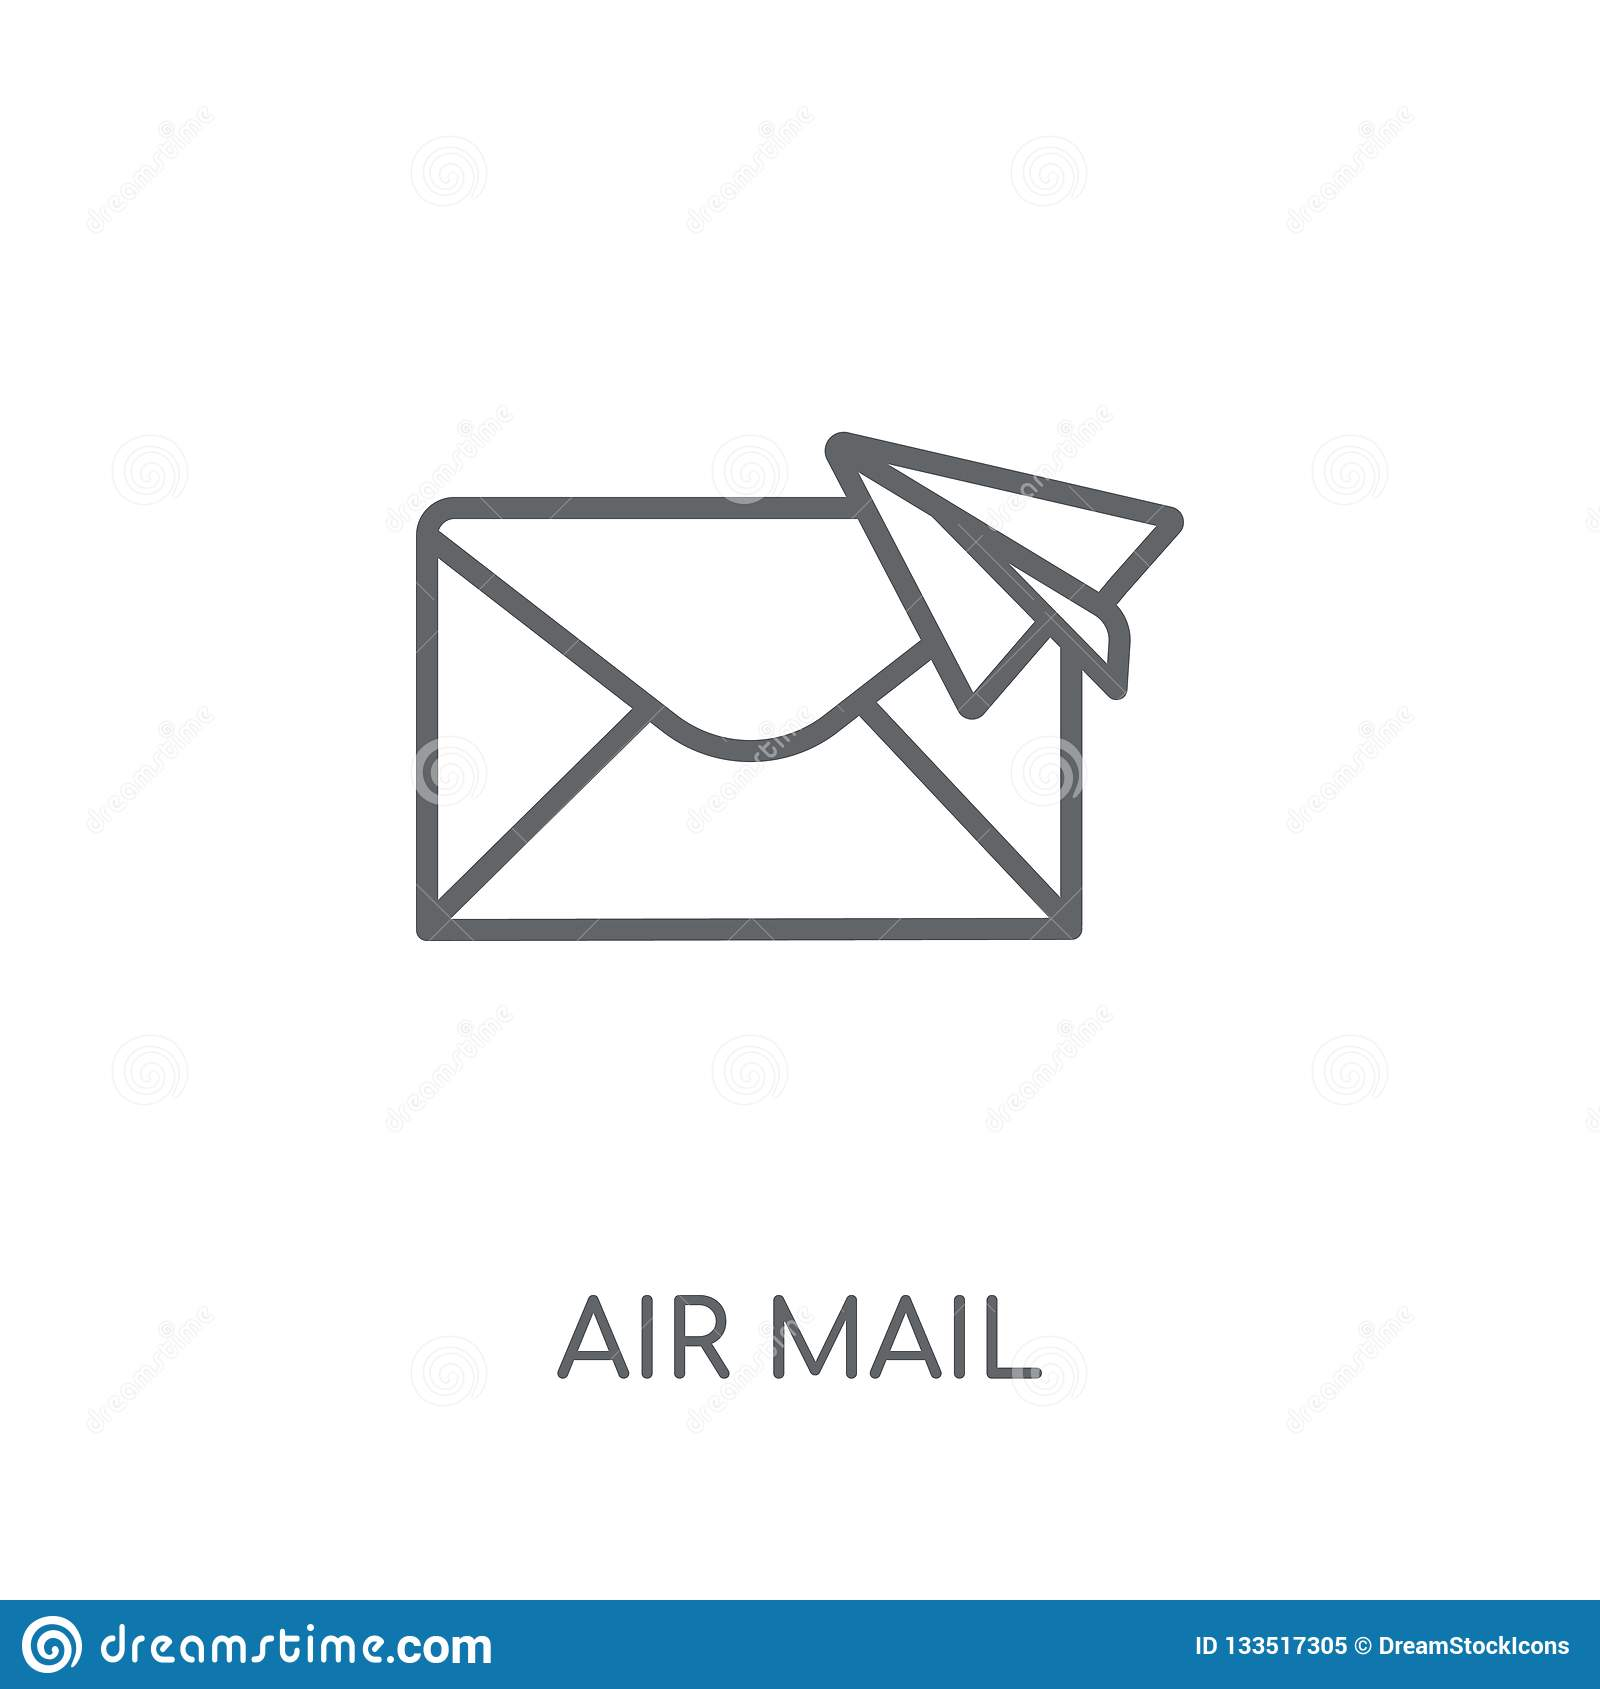 Air mail linear icon. Modern outline Air mail logo concept on wh